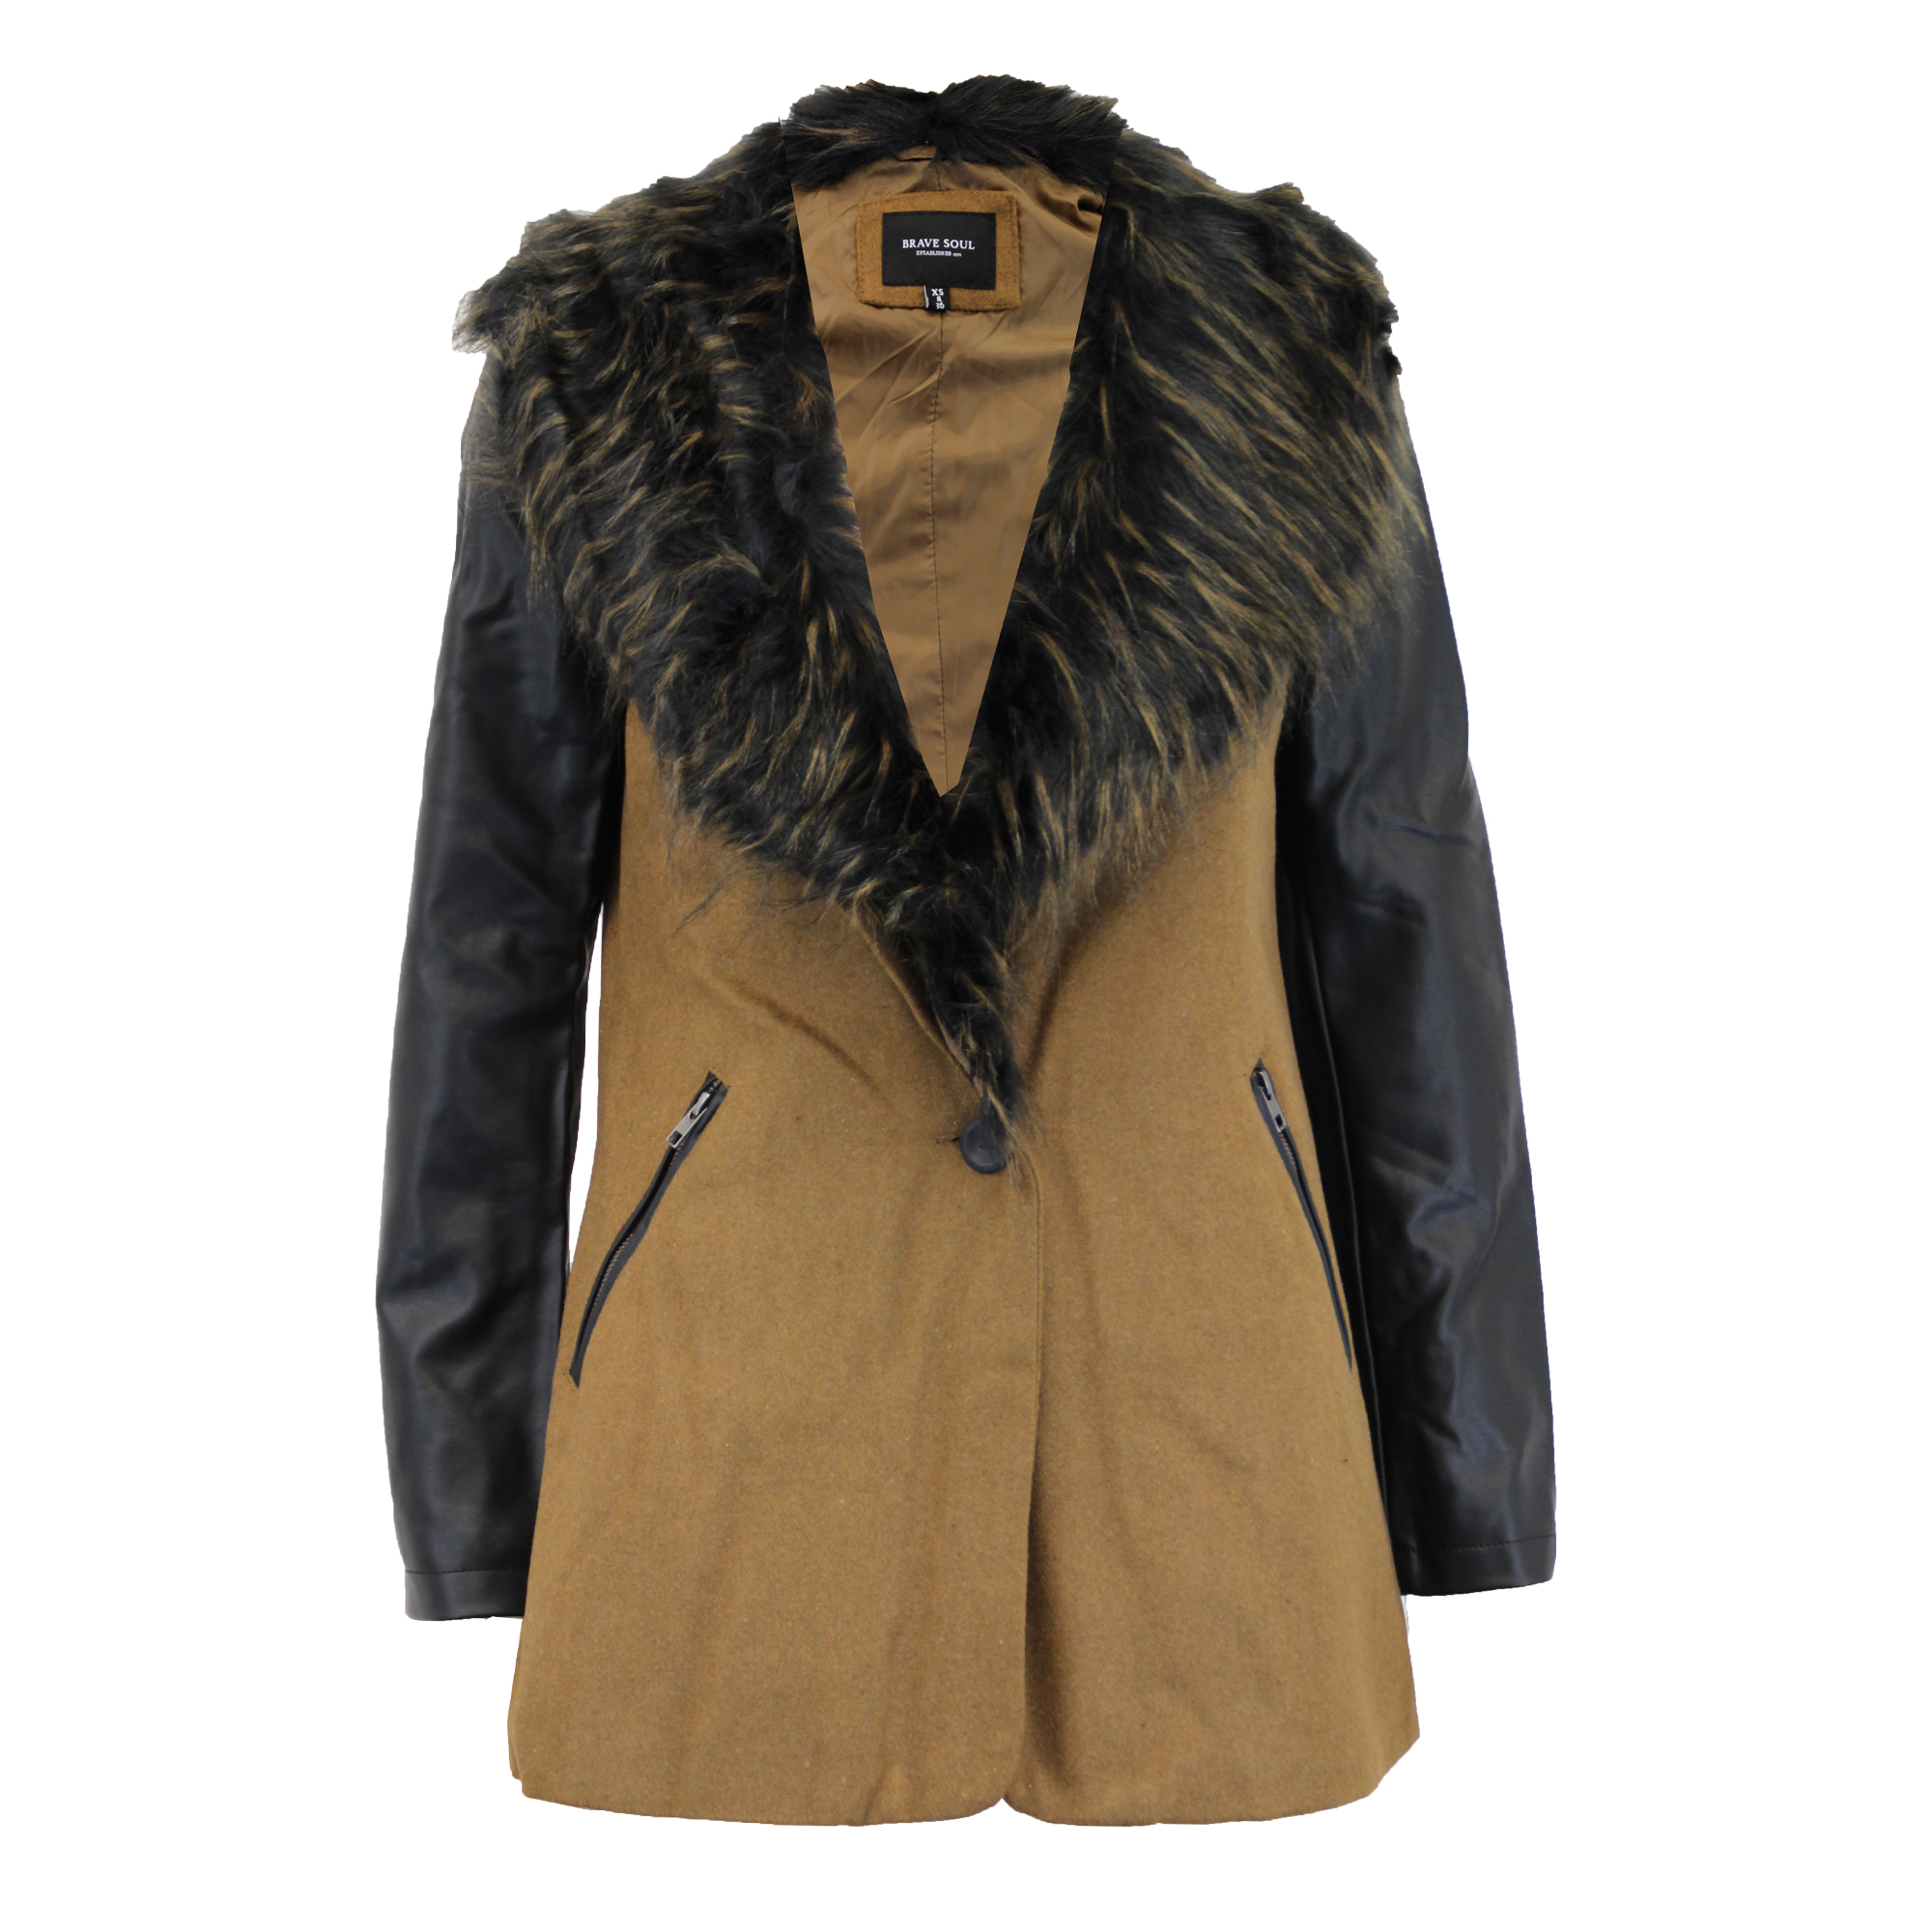 6683644efc12 Ladies Jacket Brave Soul Womens Trench Coat Wool Mix Faux Fur PU PVC ...